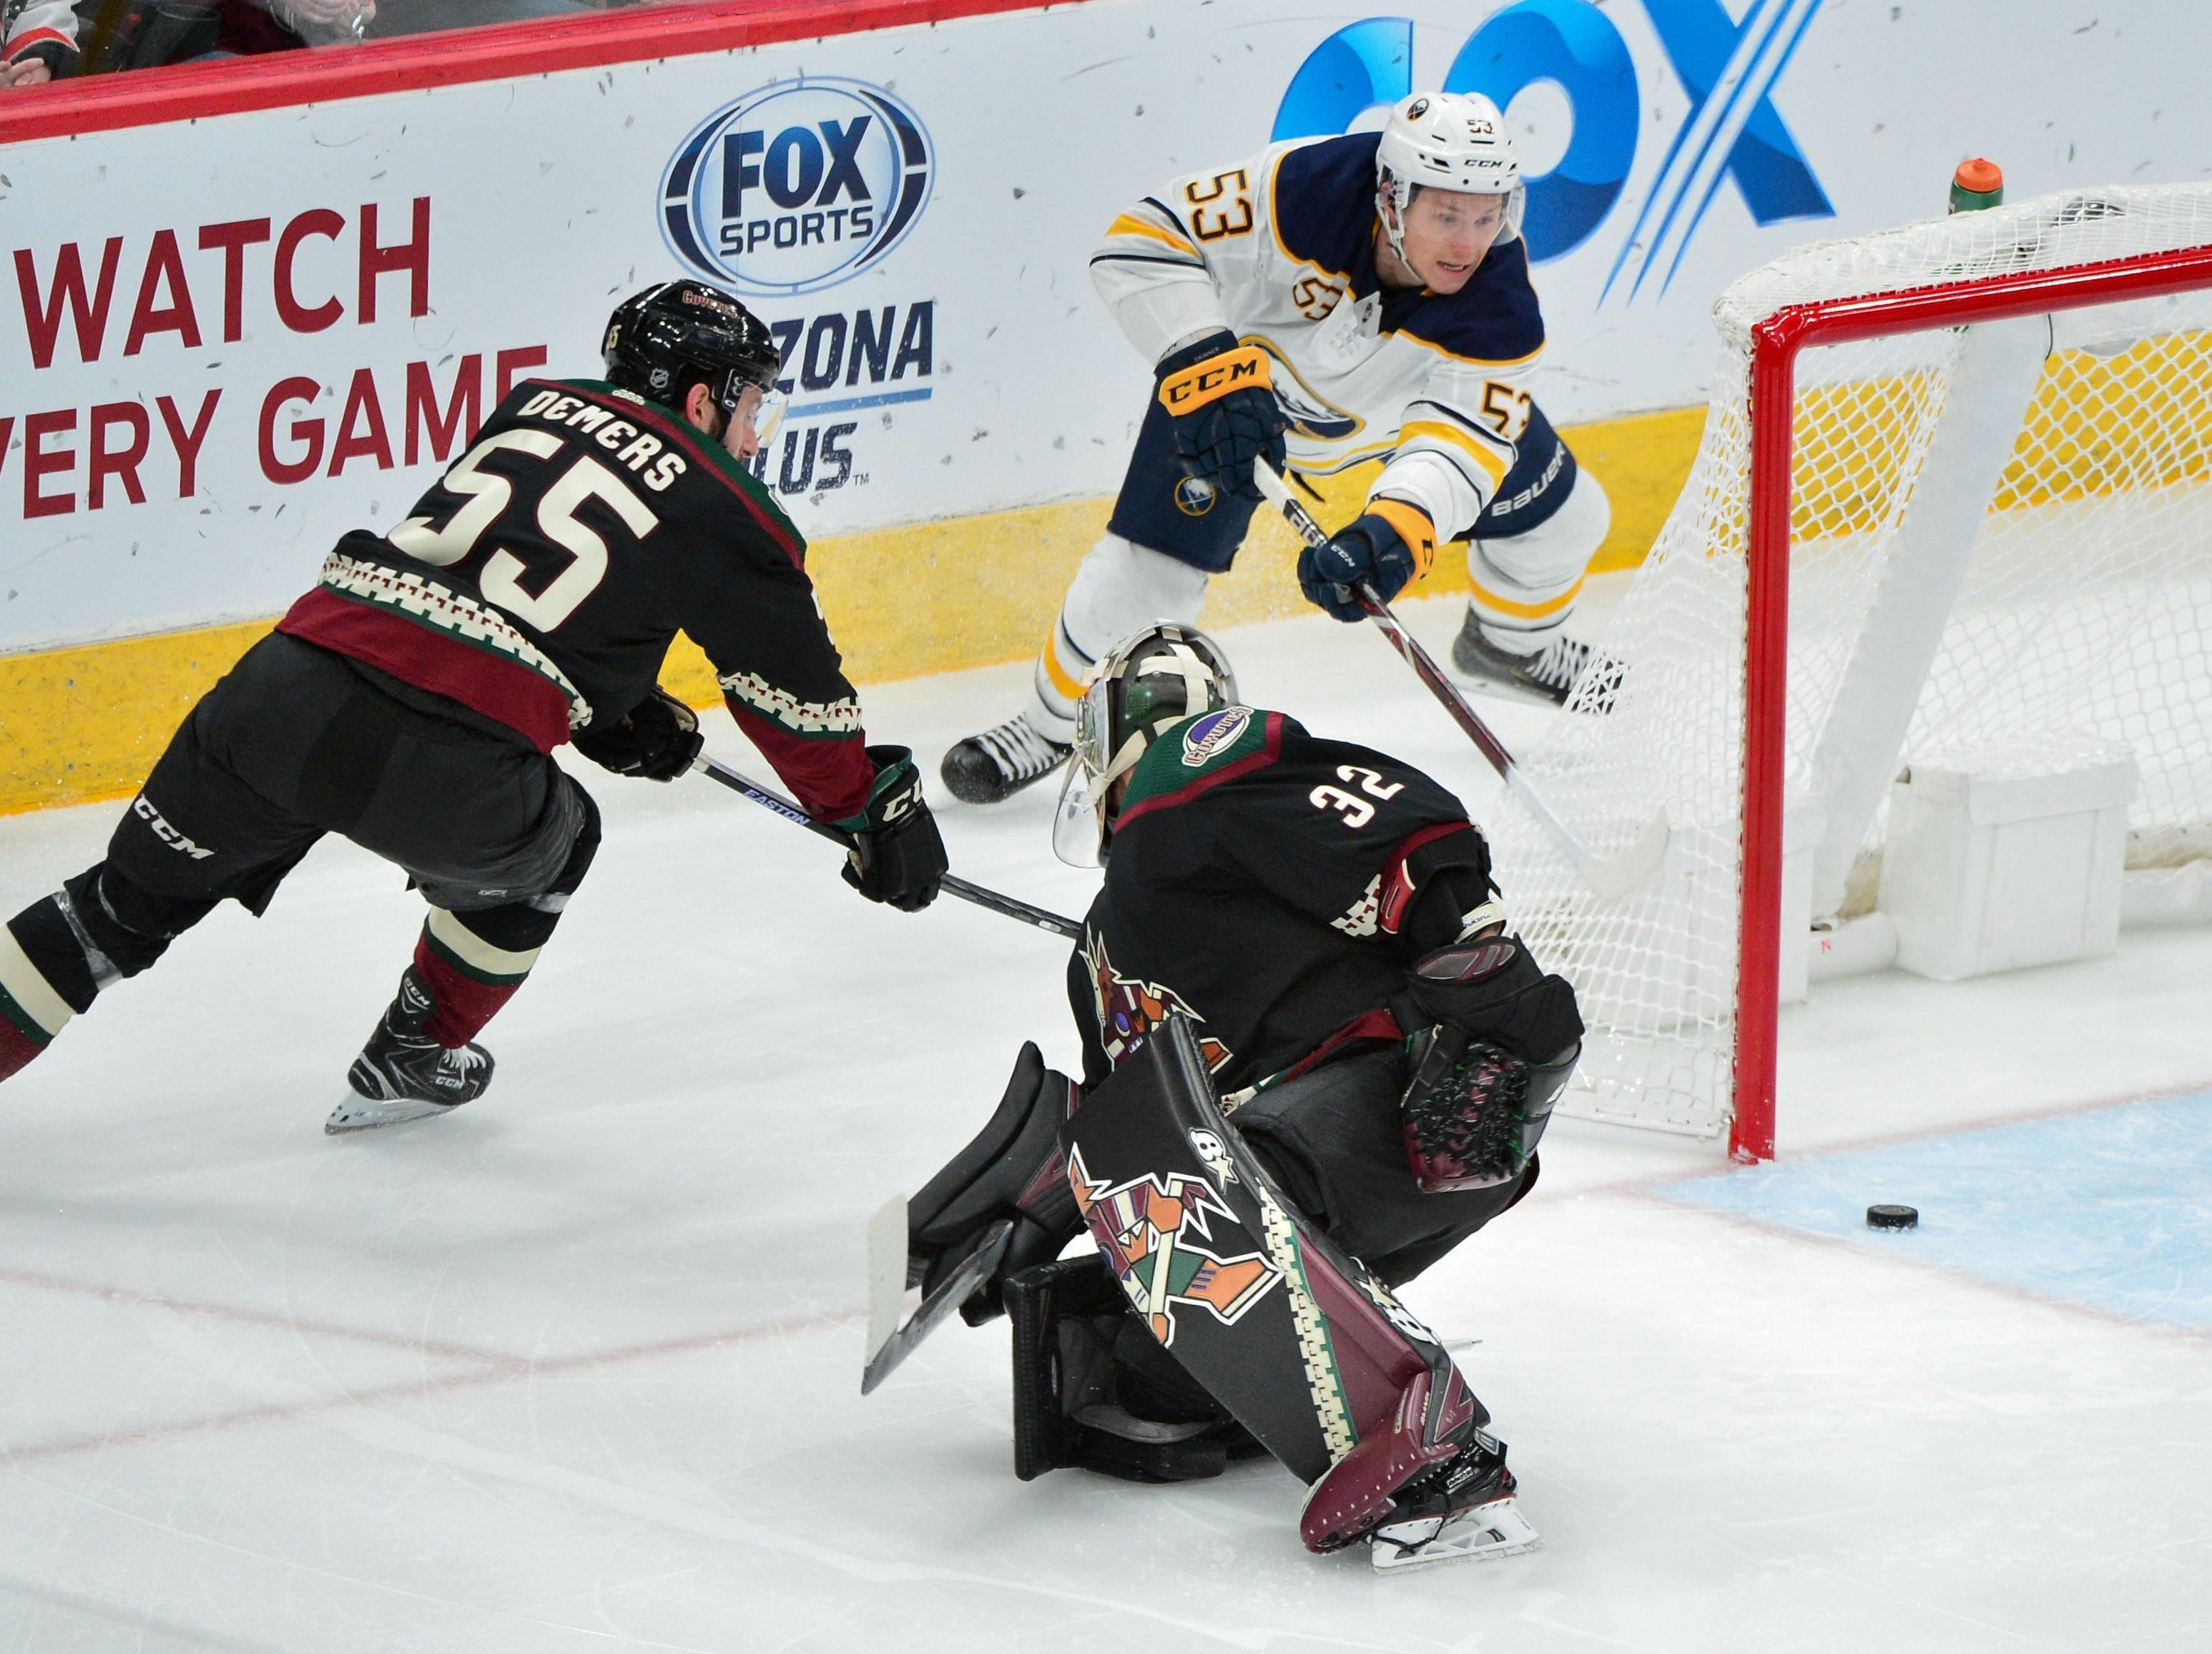 Oct 13, 2018; Glendale, AZ, USA; Buffalo Sabres left wing Jeff Skinner (53) passes to defenseman Rasmus Dahlin (not pictured) for an assist against Arizona Coyotes goaltender Antti Raanta (32) and defenseman Jason Demers (55) during the first period at Gila River Arena.